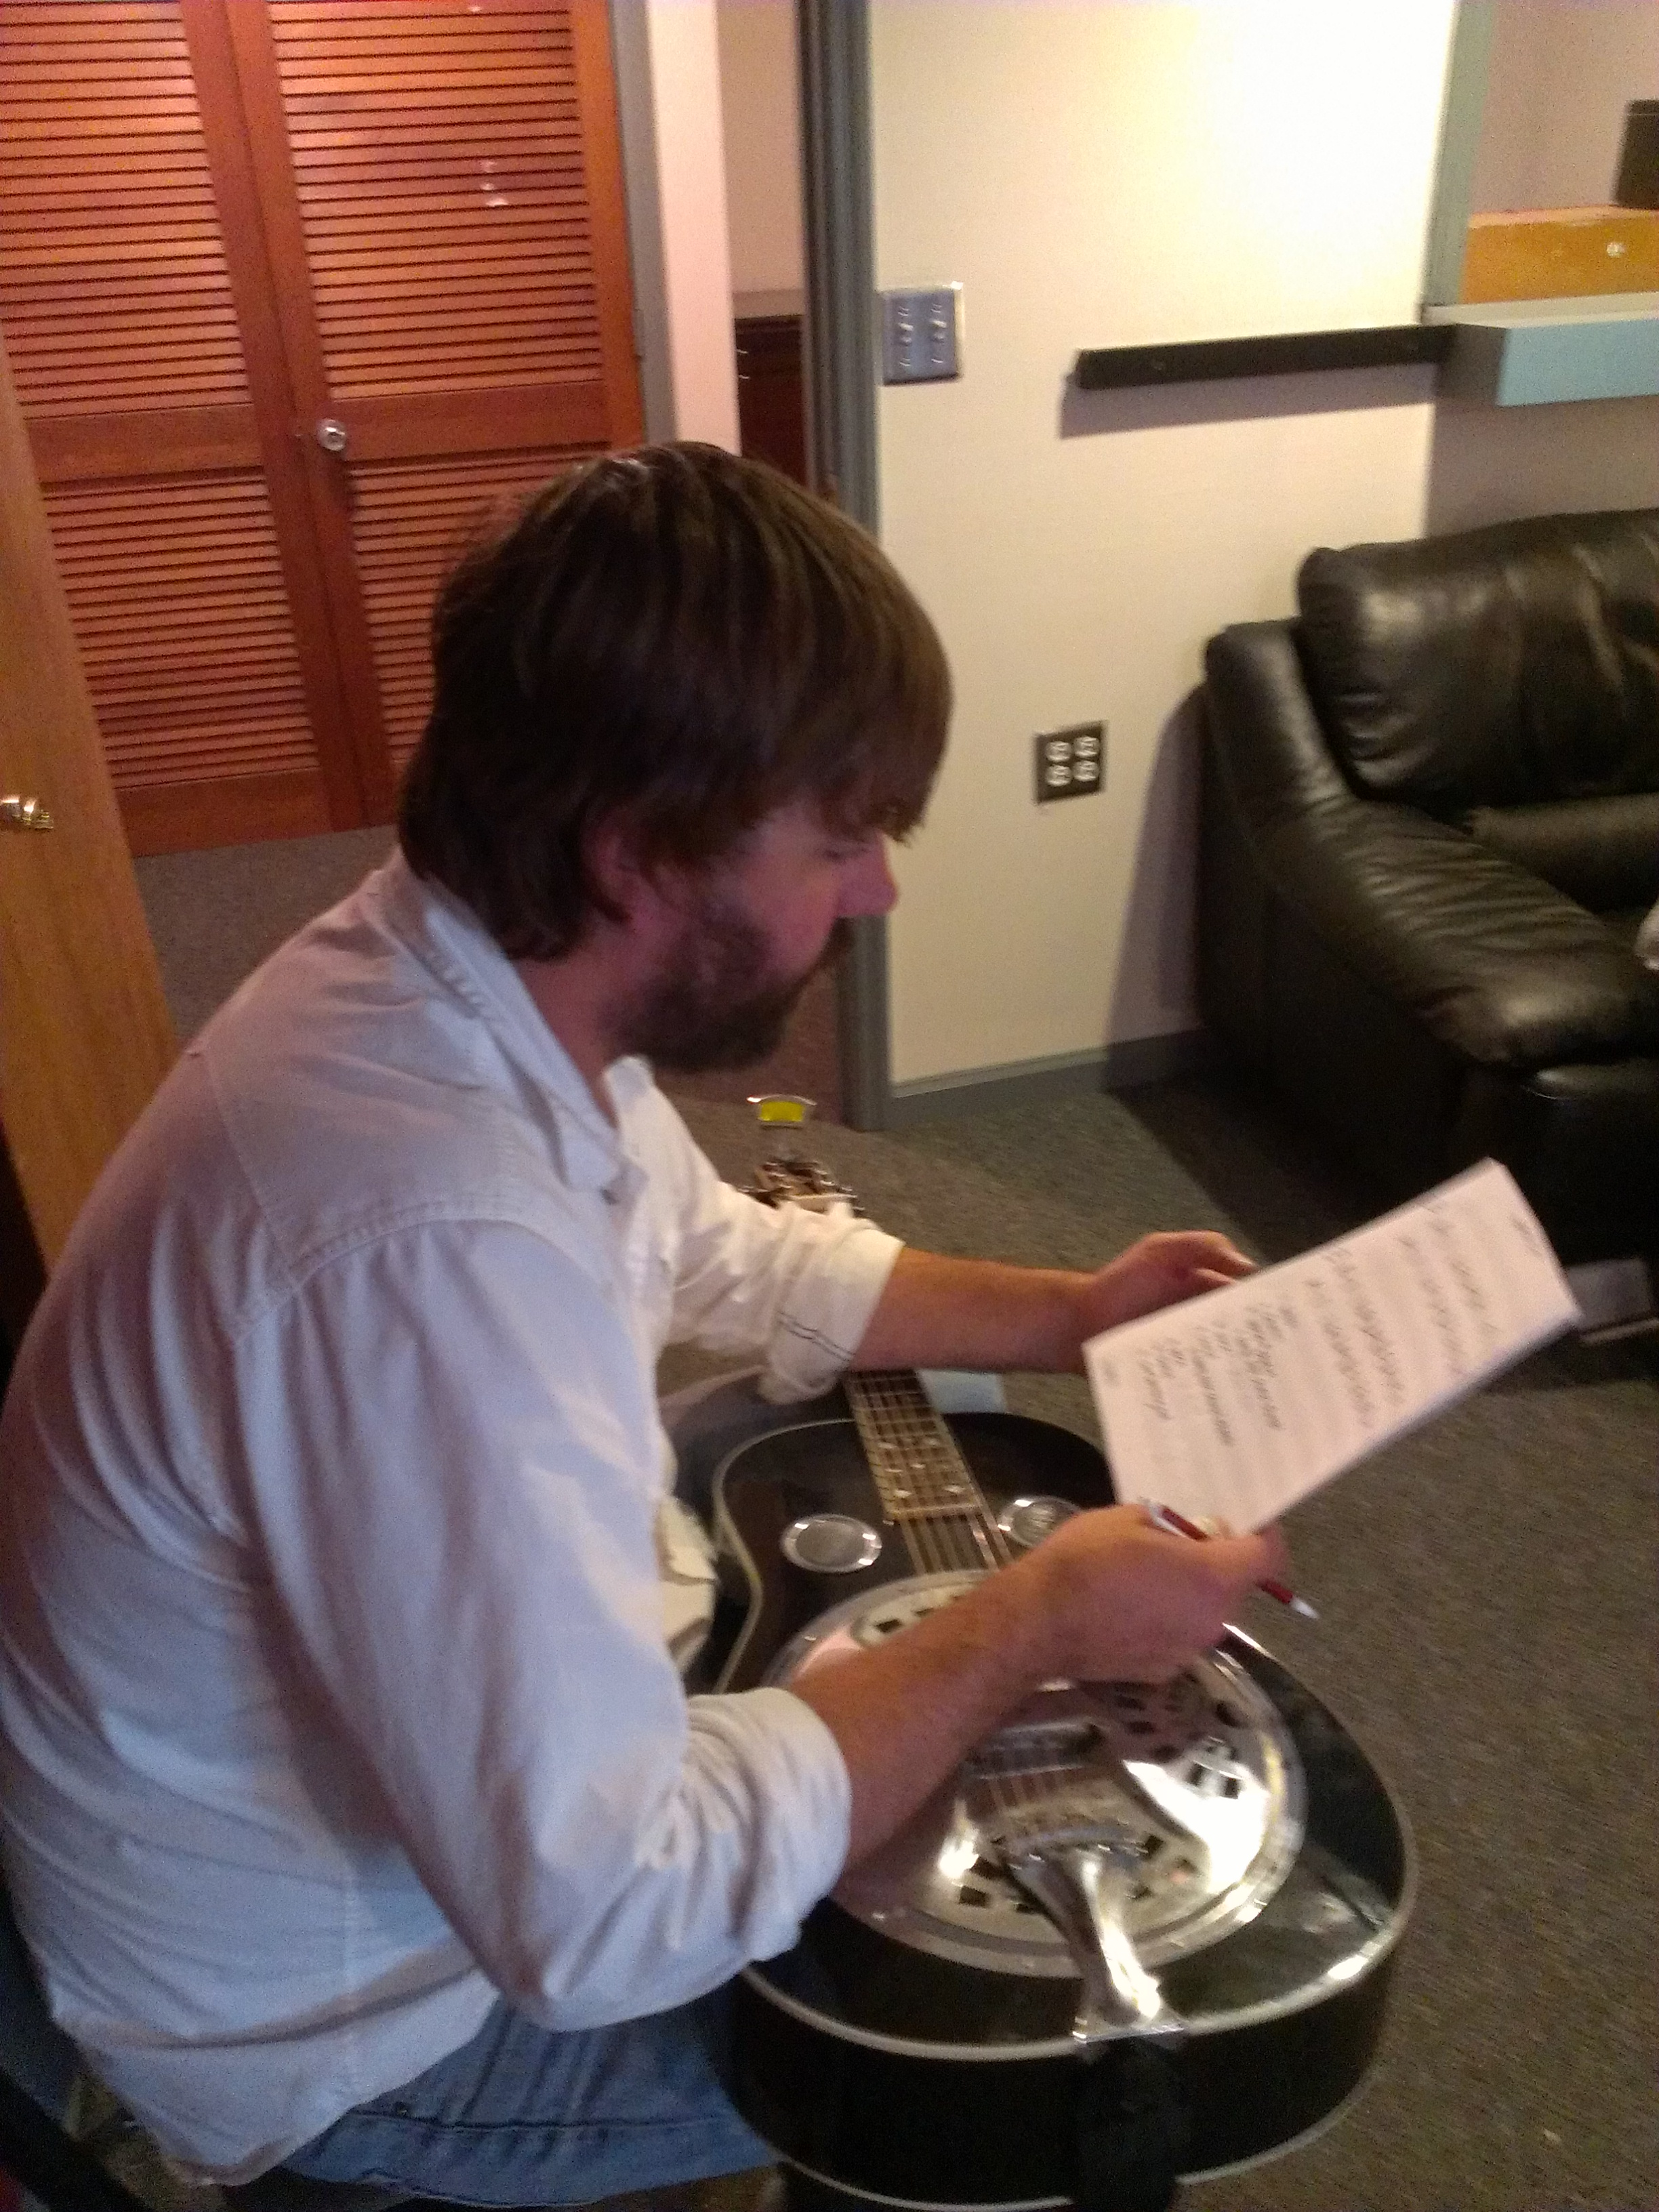 Jay looking at chord charts as his dobro looks on.